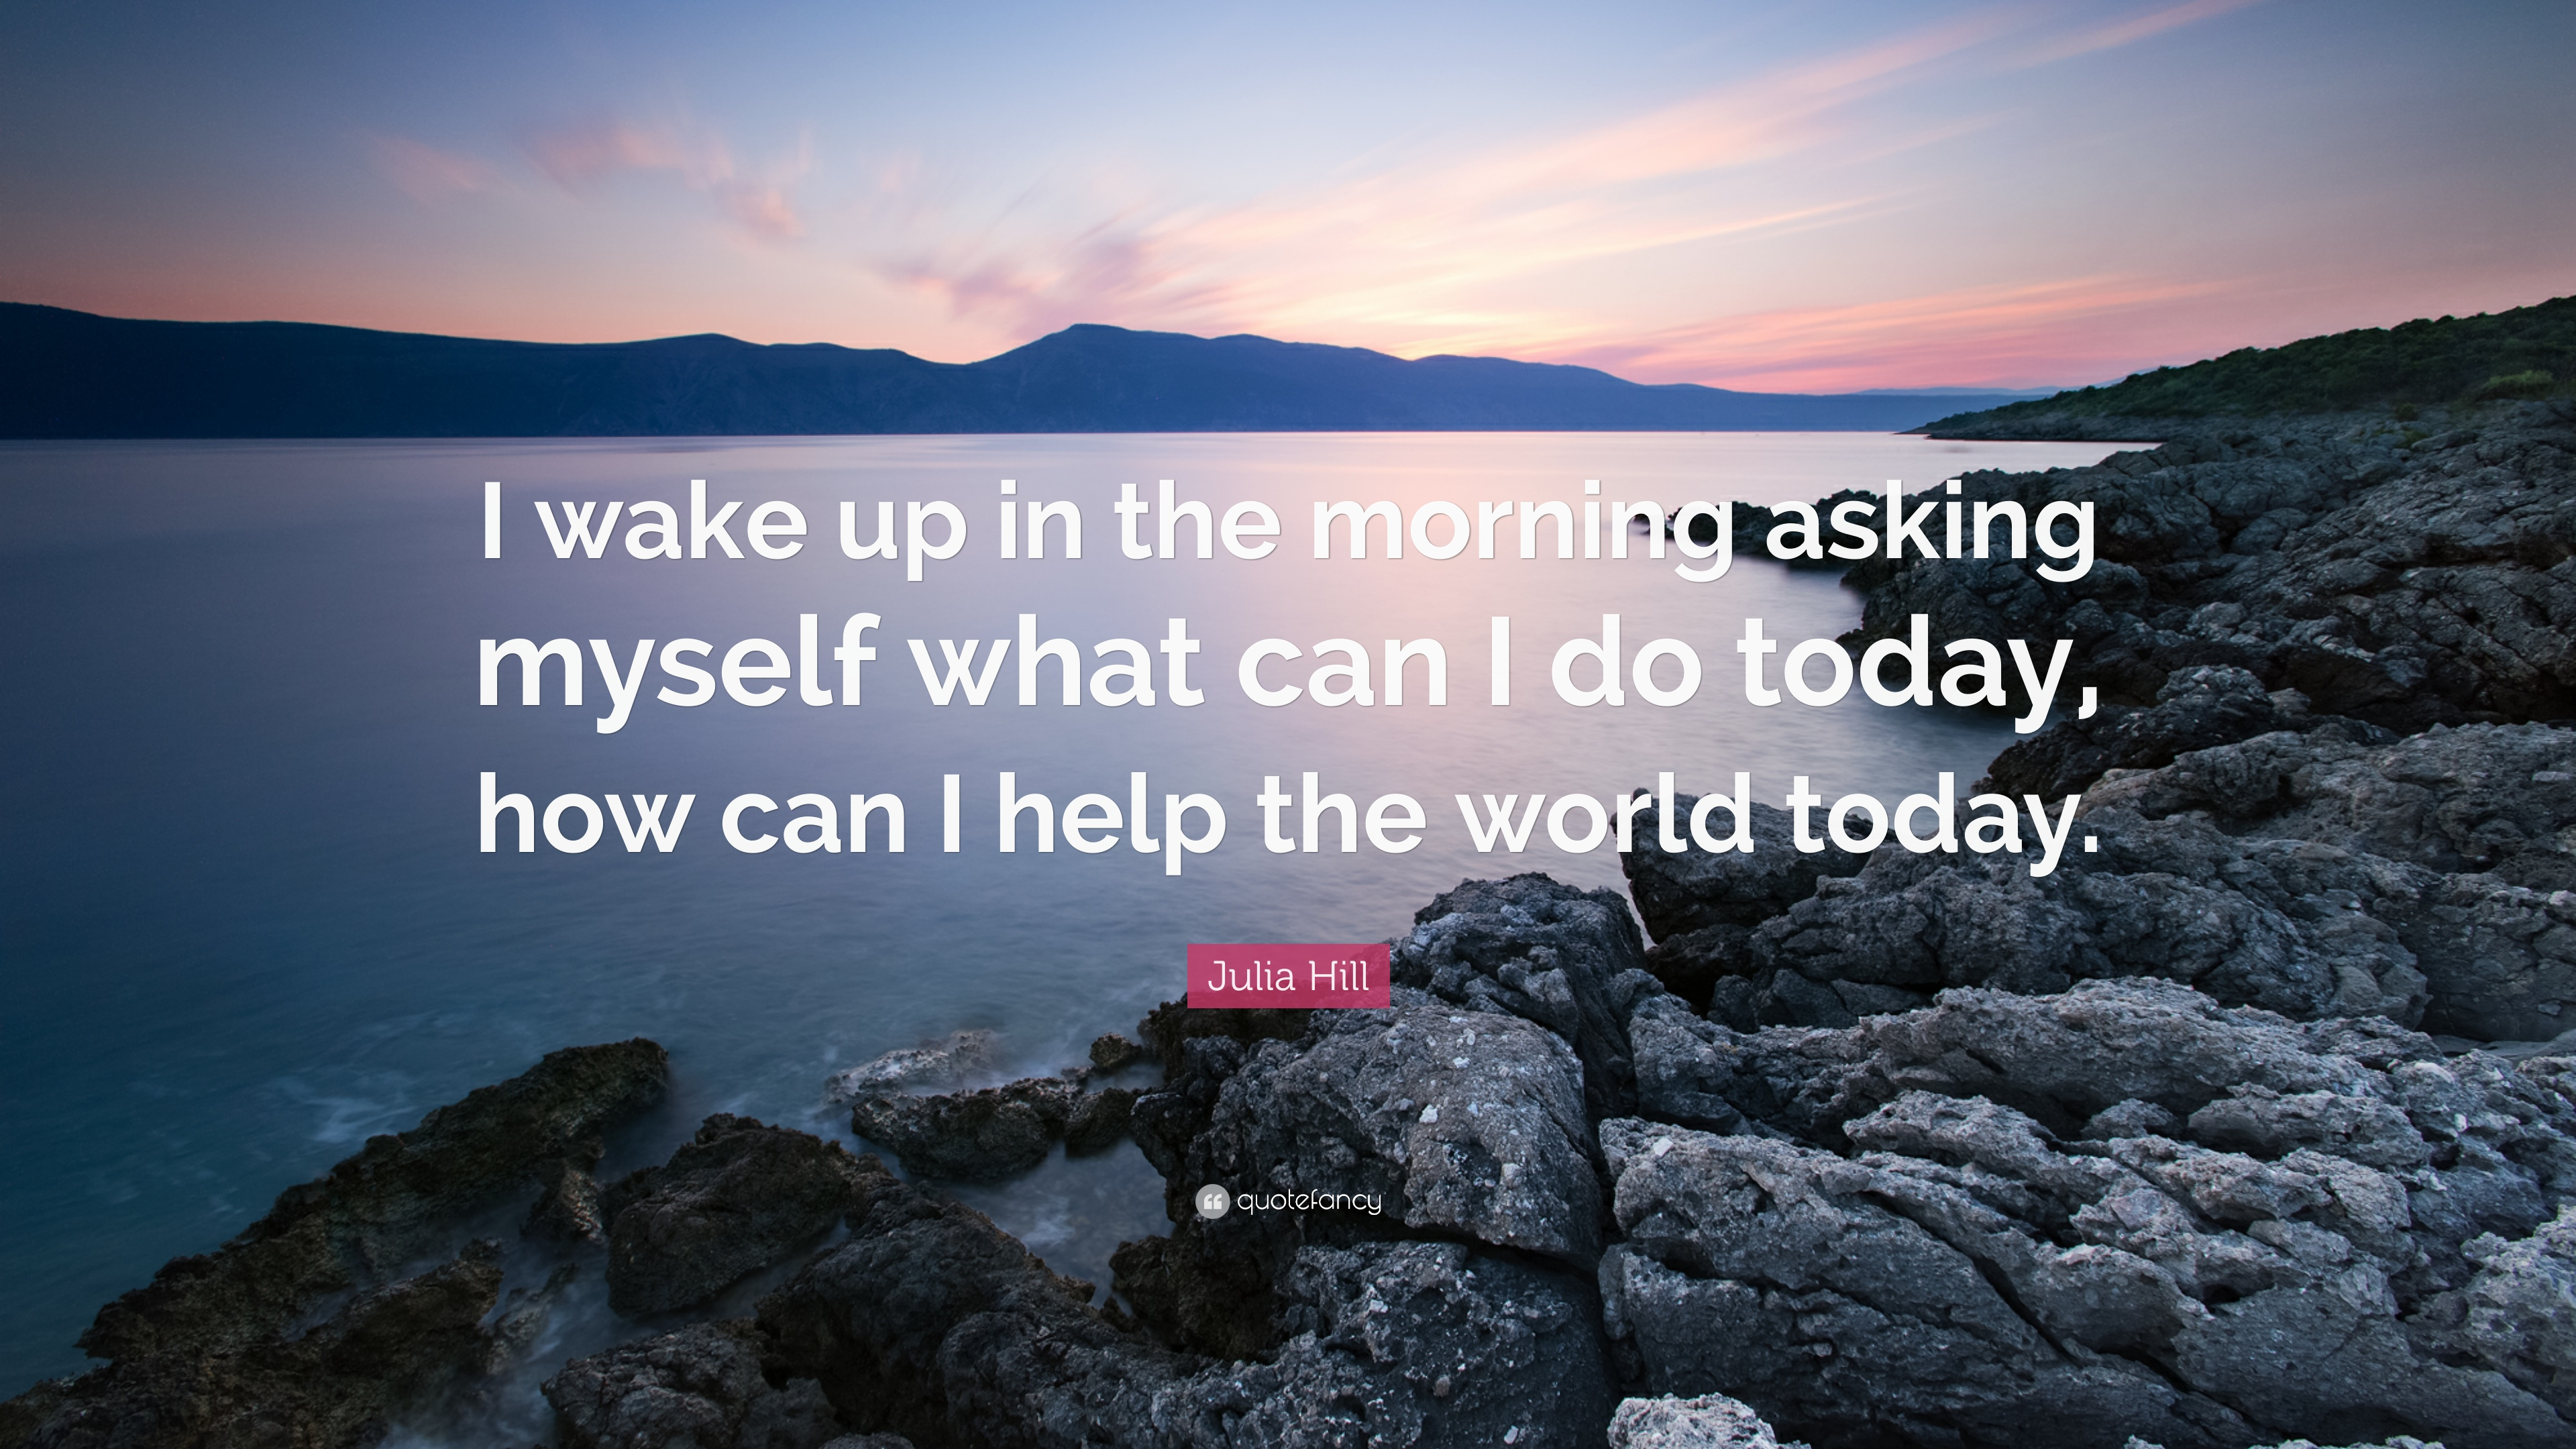 Julia Hill Quote I Wake Up In The Morning Asking Myself What Can I